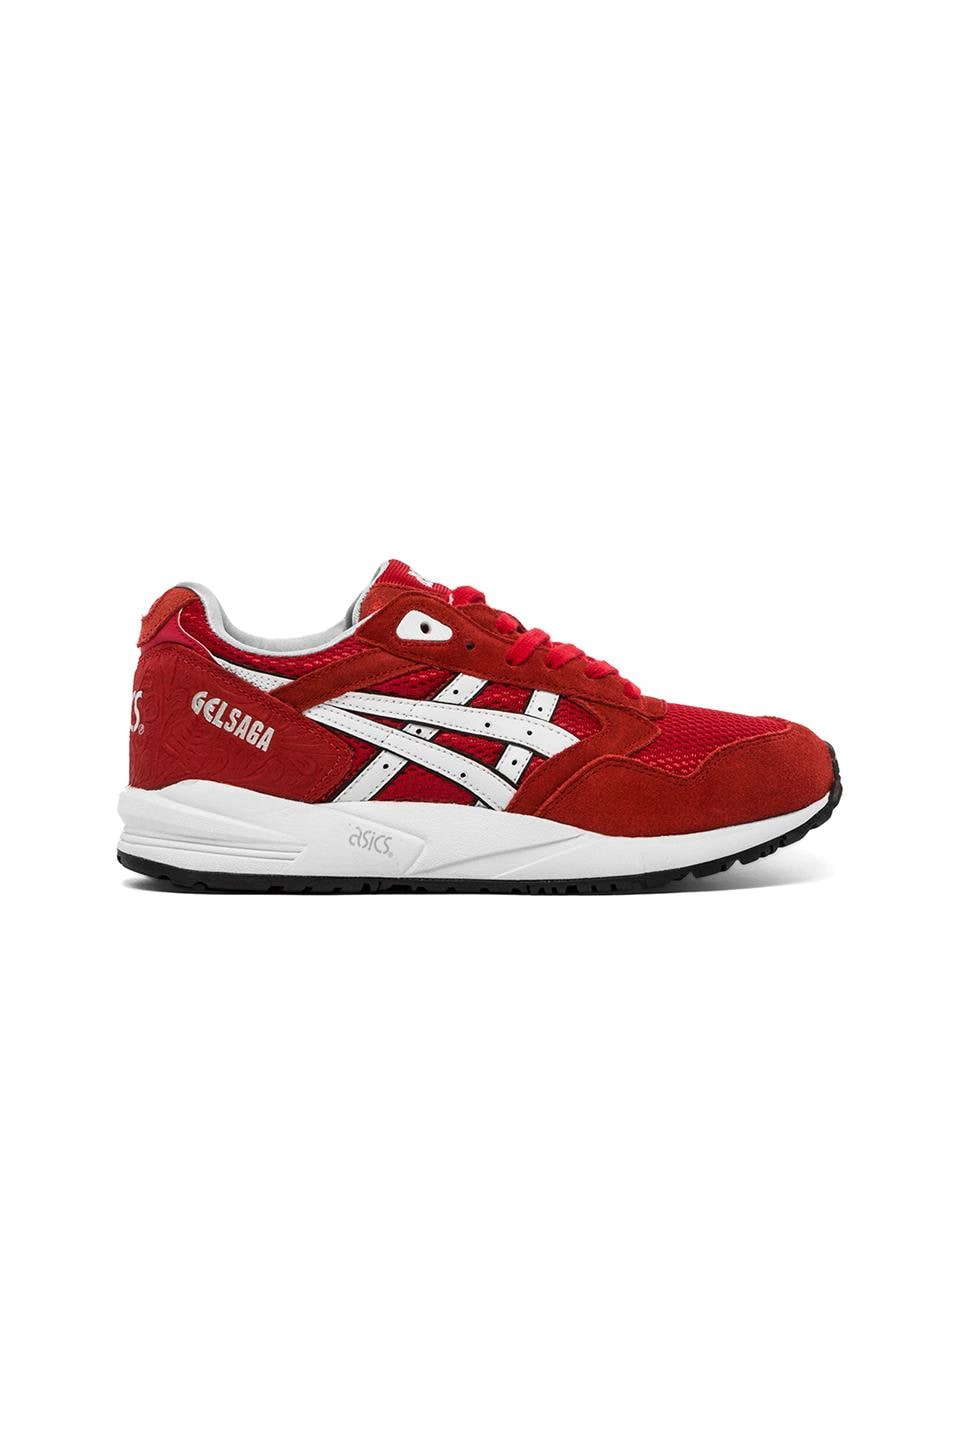 Asics Gel-Lyte III in Fairy Red & White